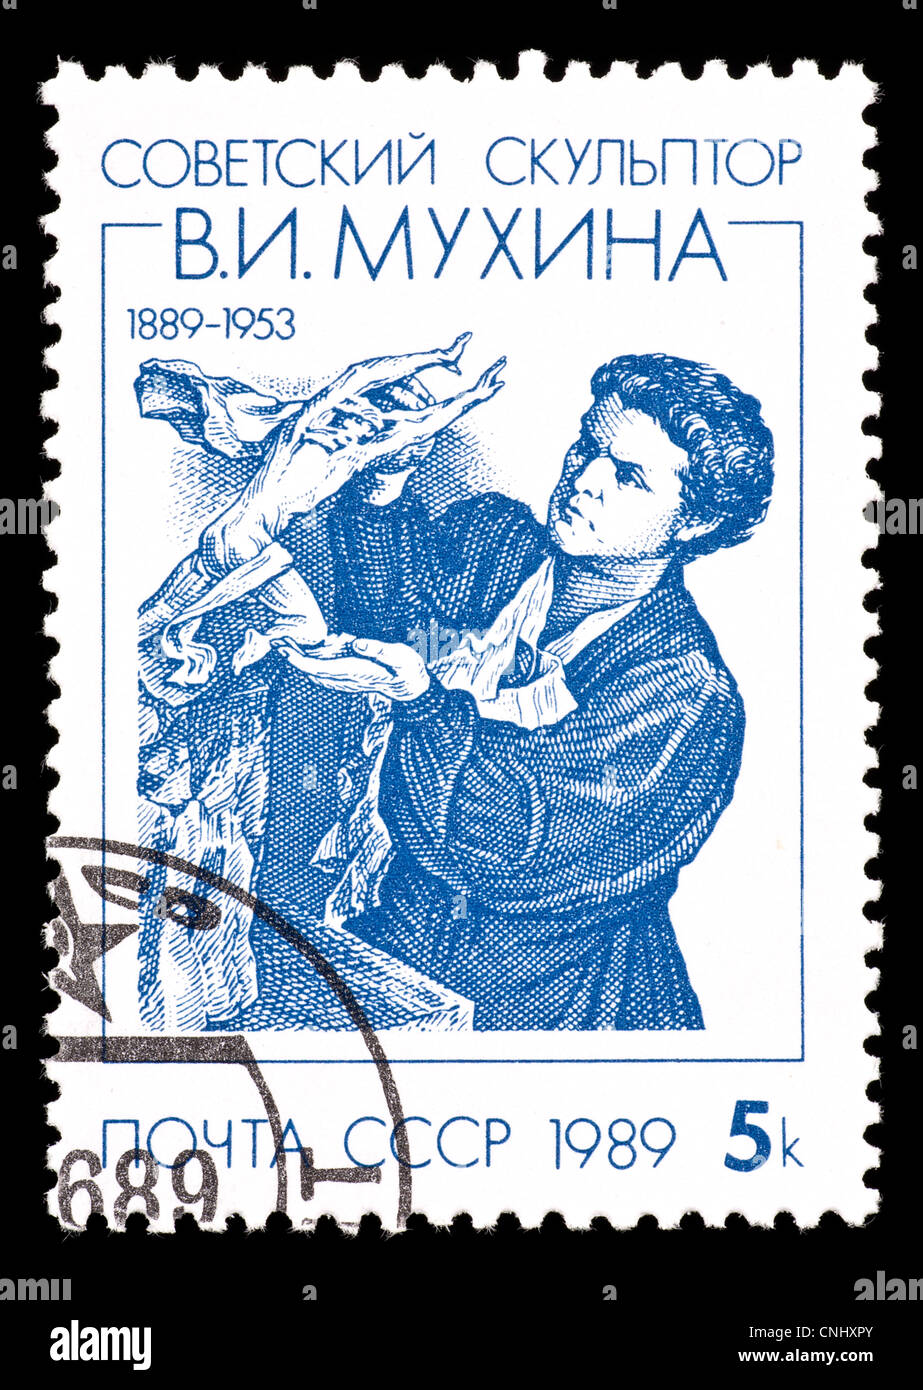 Postage stamp from the Soviet Union depicting the sculpture Mukhina by Vera Nesterov. - Stock Image